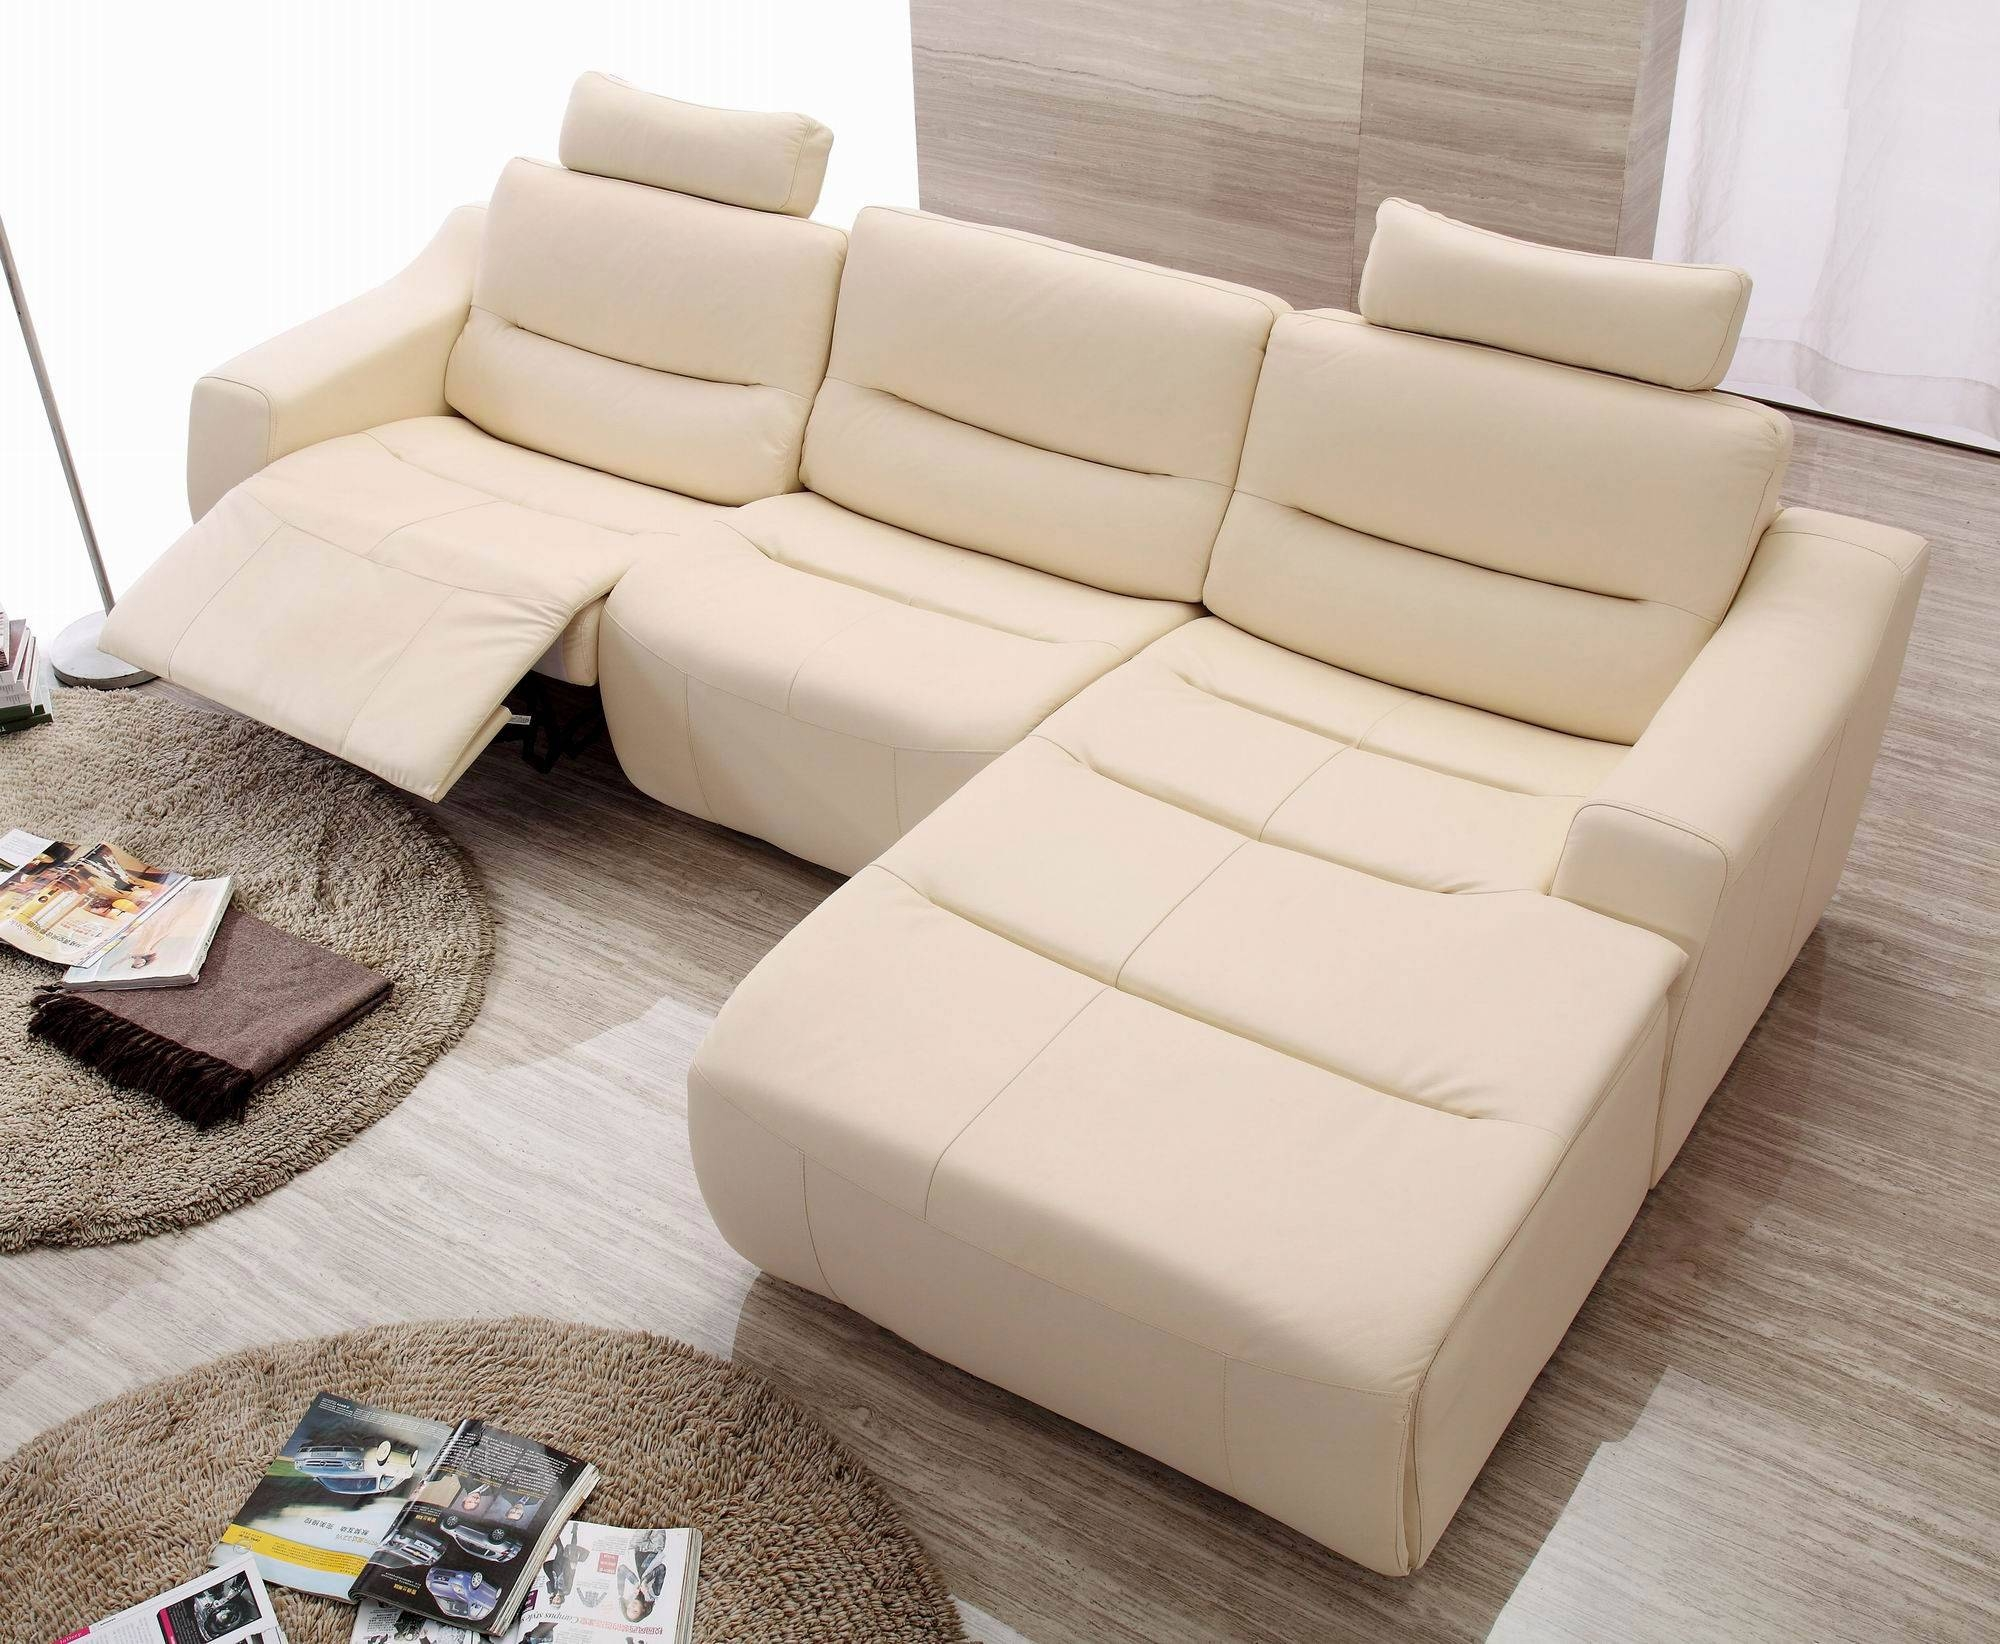 Gallery Of New Traditional Sectional Sofas For Small Spaces With Pertaining To Sectional Sofas For Small Spaces With Recliners (View 13 of 30)